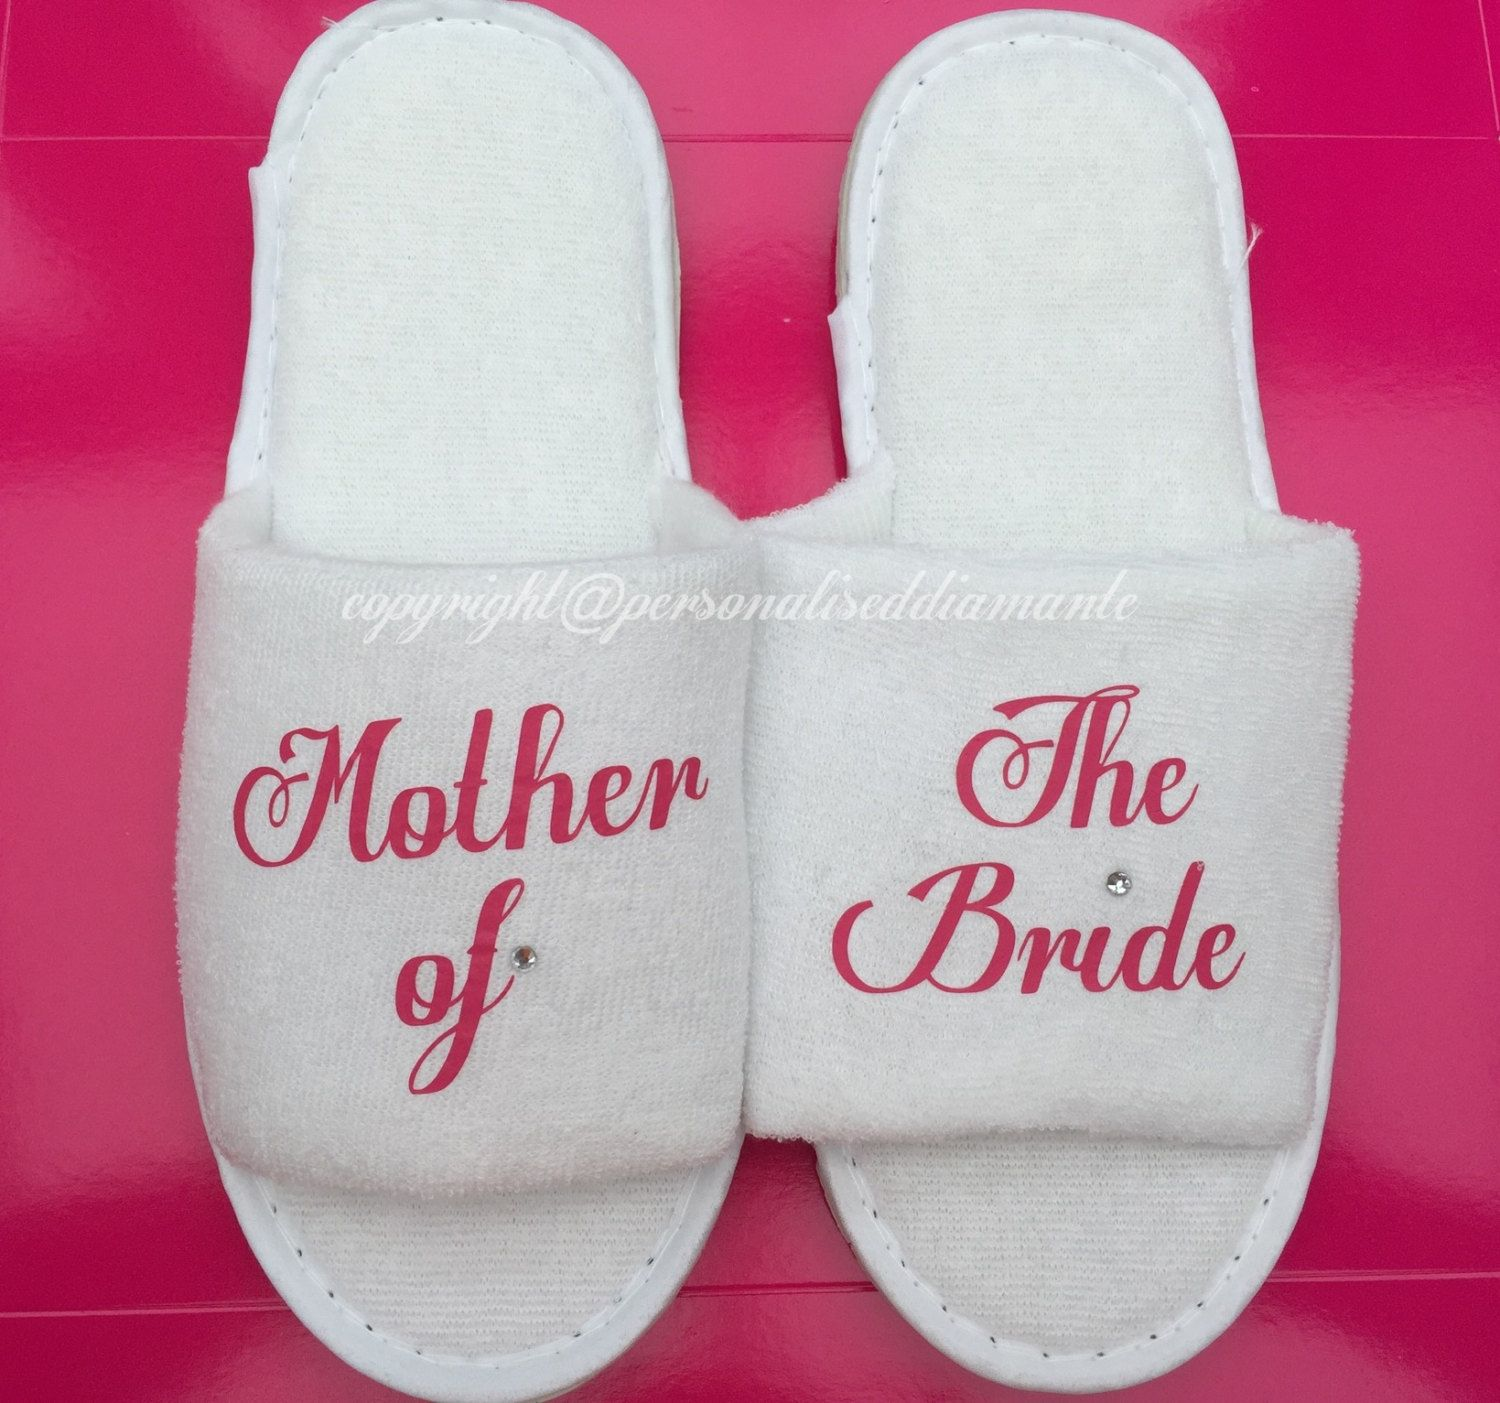 91dcabbfd Mother of the bride slippers